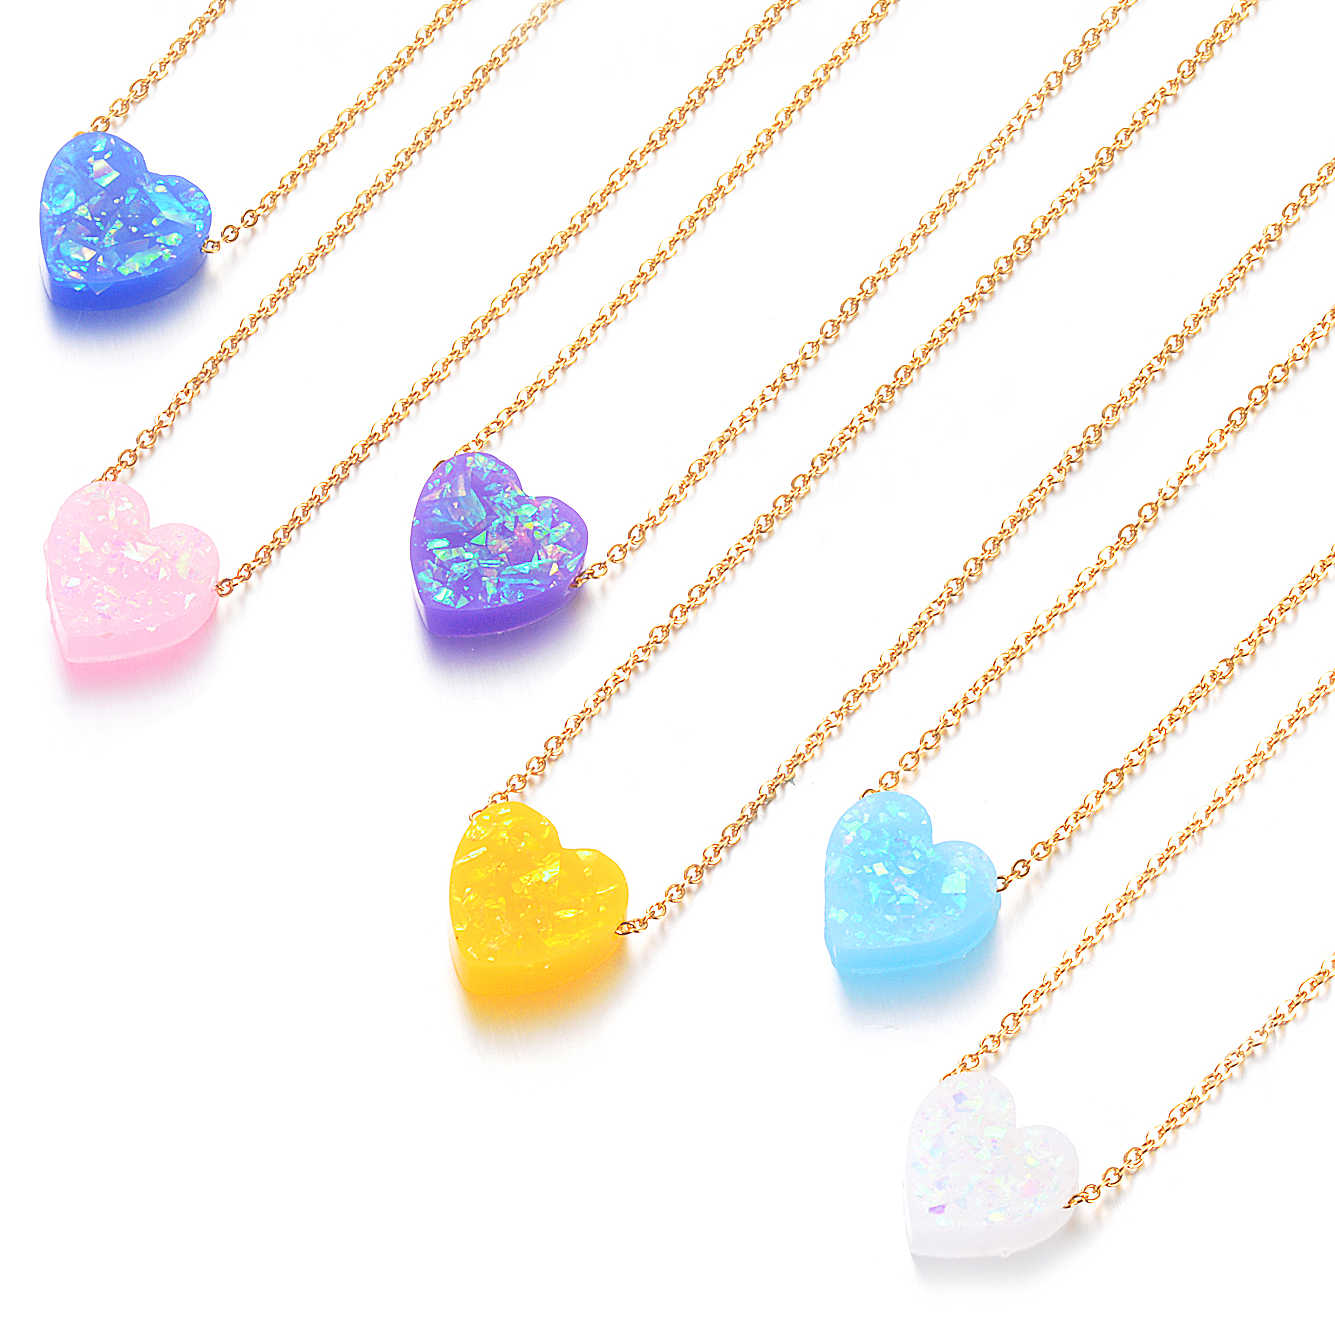 6 Colors 12mm Heart Shape Opal Stone Pendant Necklace 316L Stainless Steel Gold Chain Collar Jewelry Girlfriend Gifts